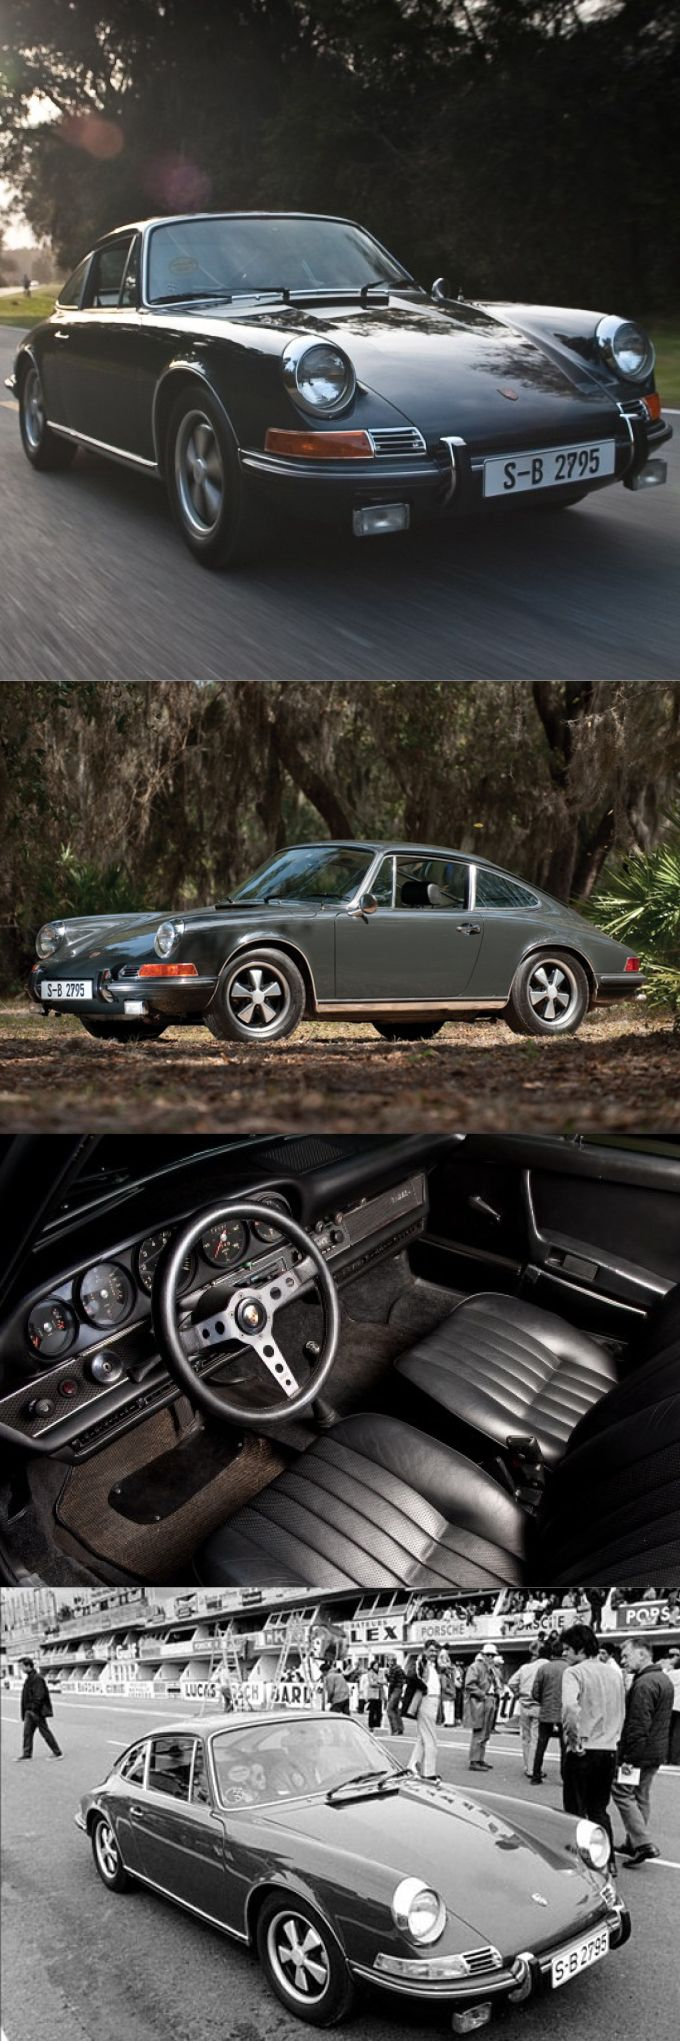 Home gt steve mcqueen porsche paintings - 1970 Porsche 911 S From Steve Mcqueen S Movie Le Mans Auctioned For 1 375 Mio At Monterey